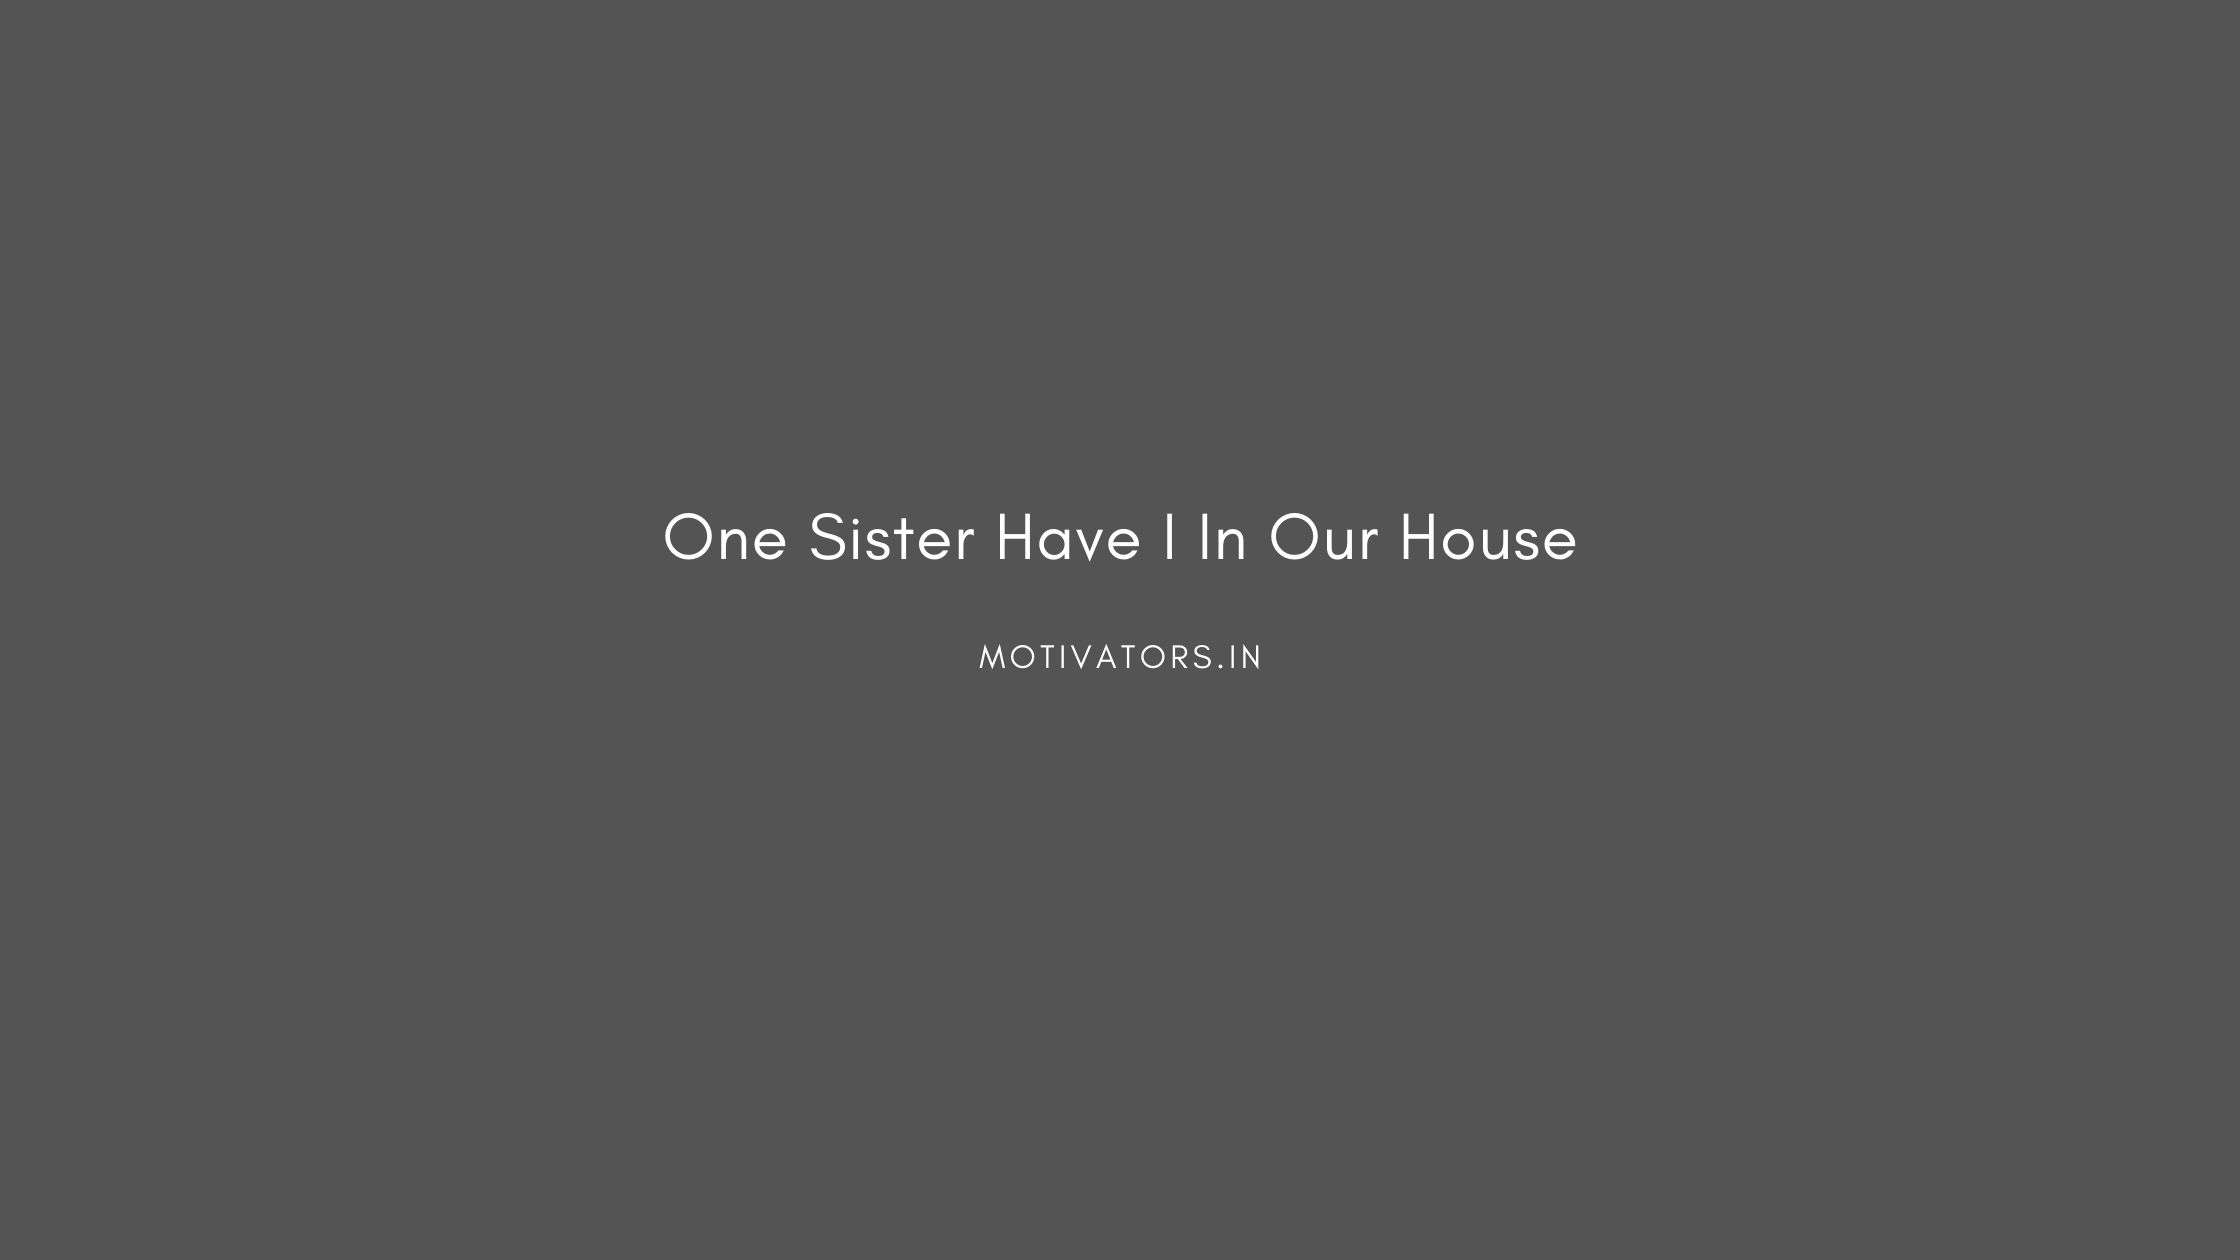 One Sister Have I In Our House